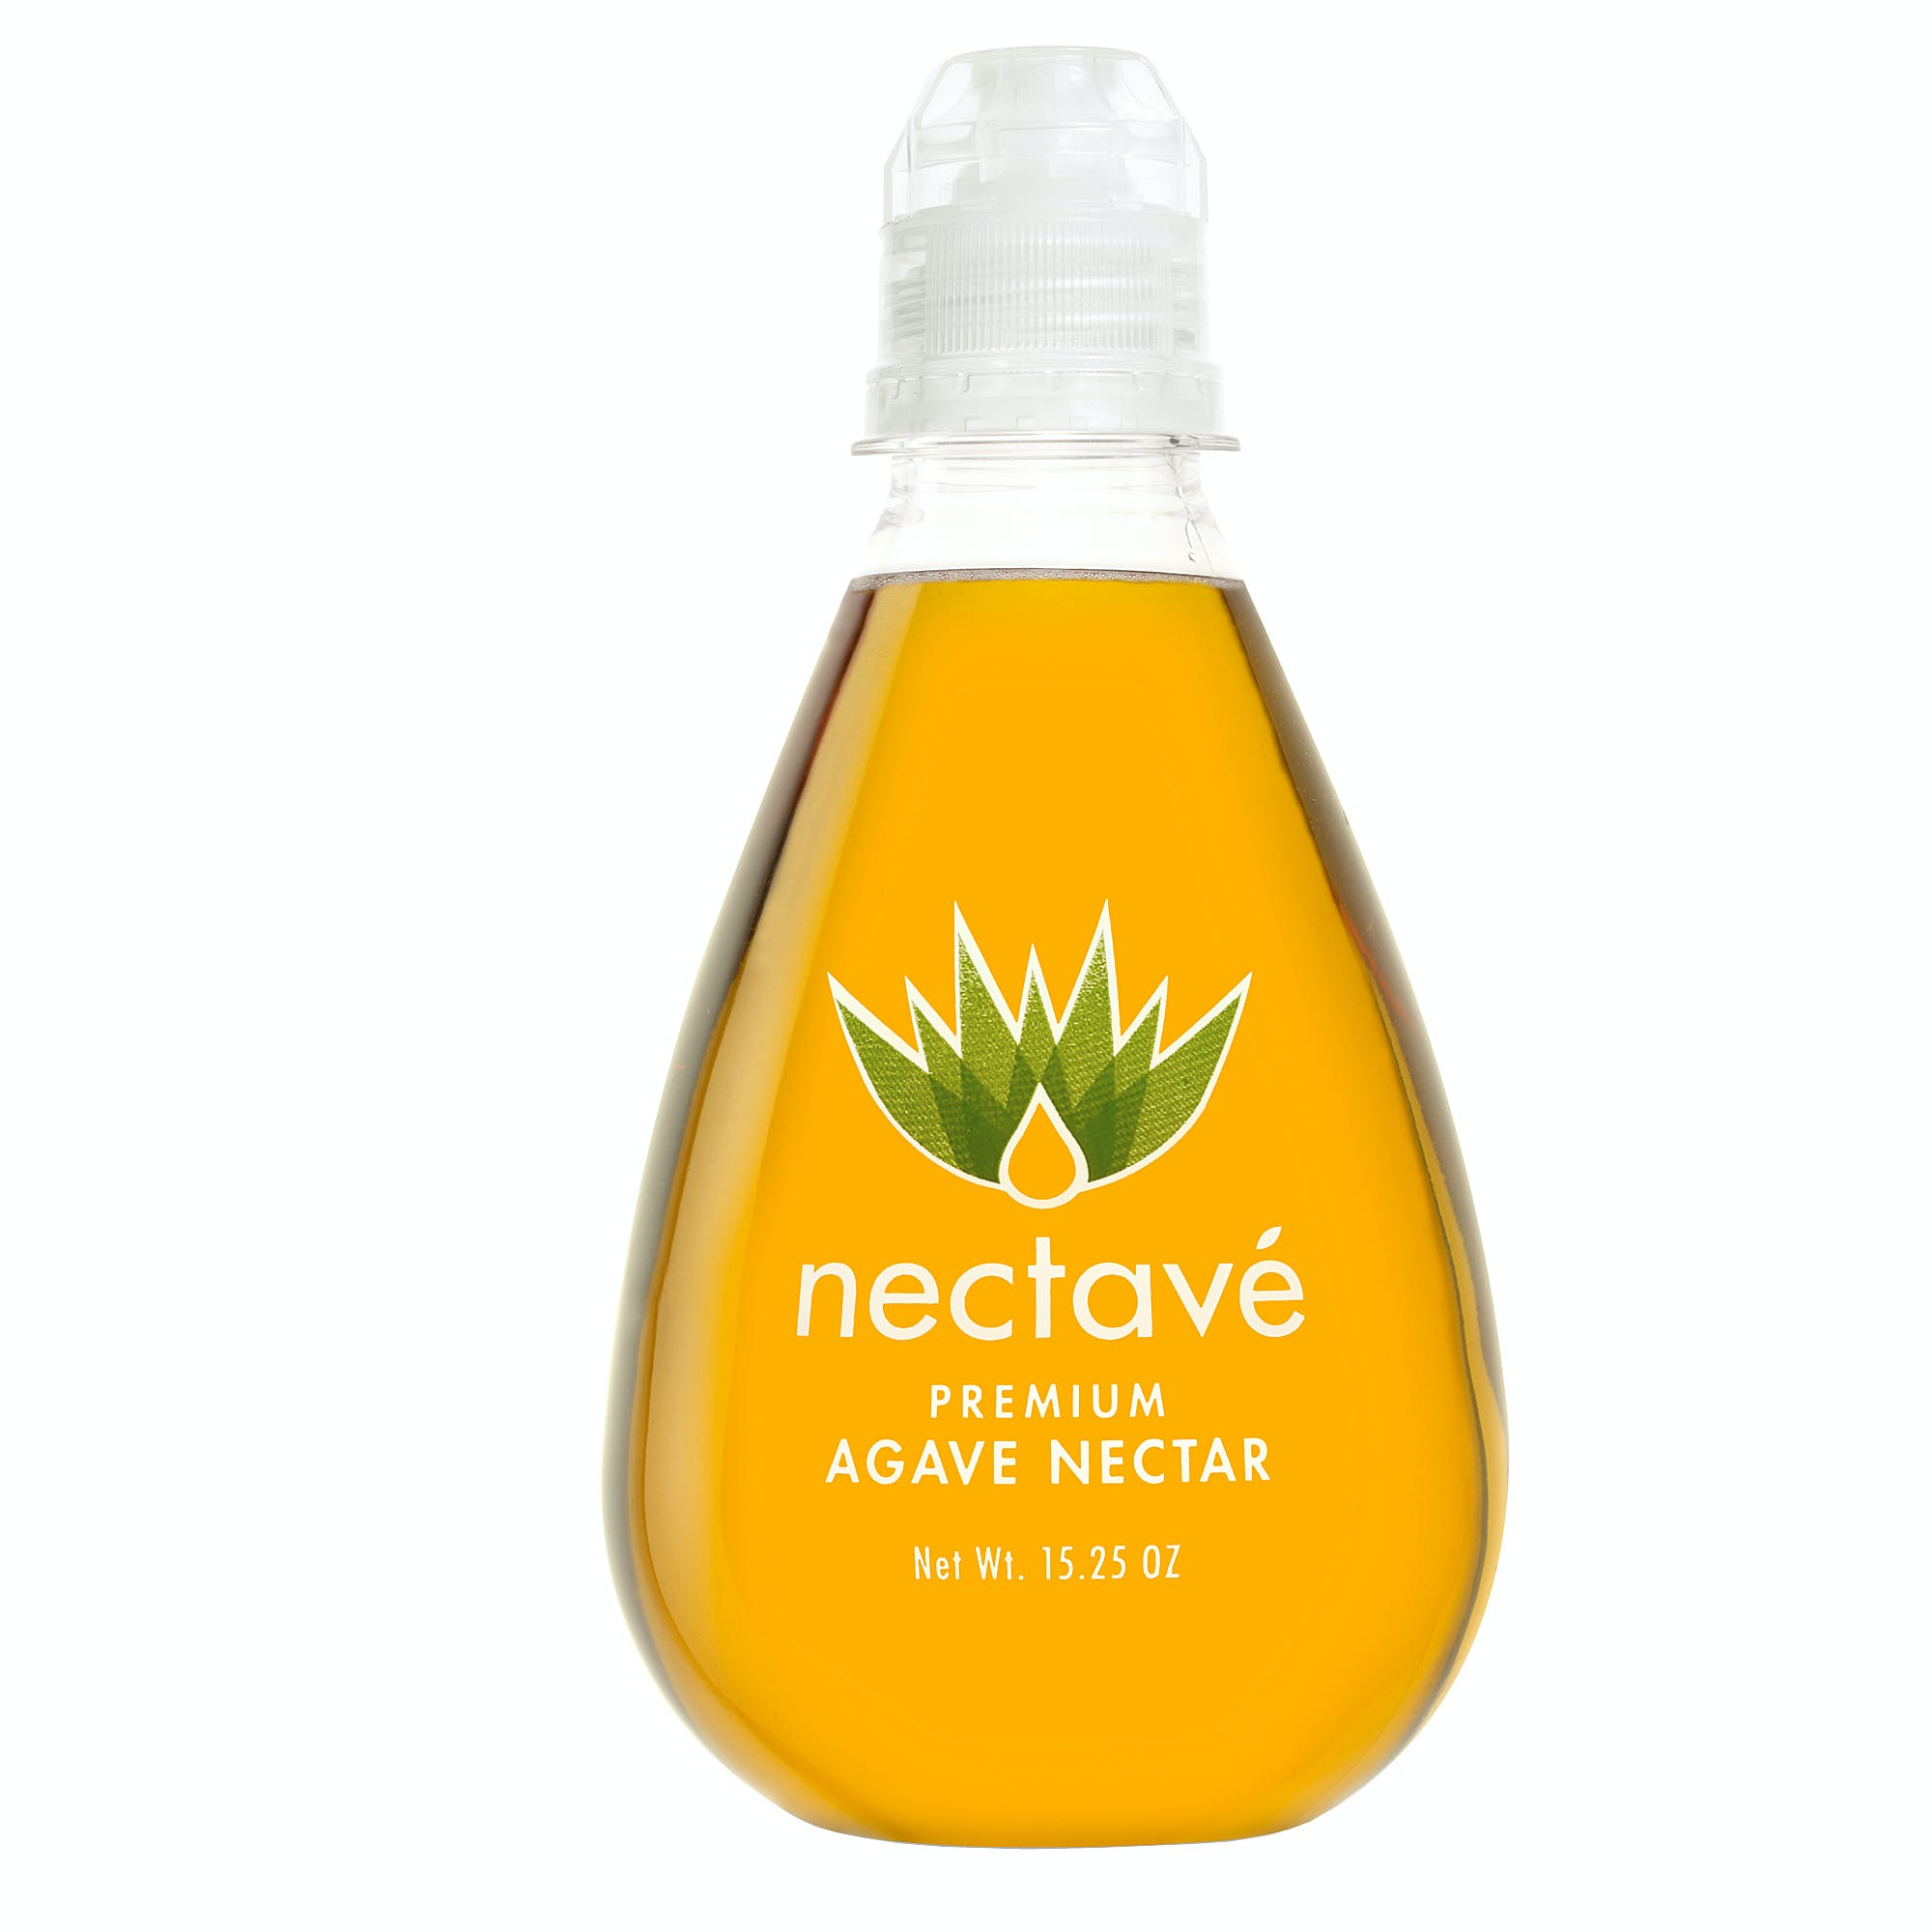 Organic Agave Nectar Tear Drop Agave sweetener sold by M5 Corporation